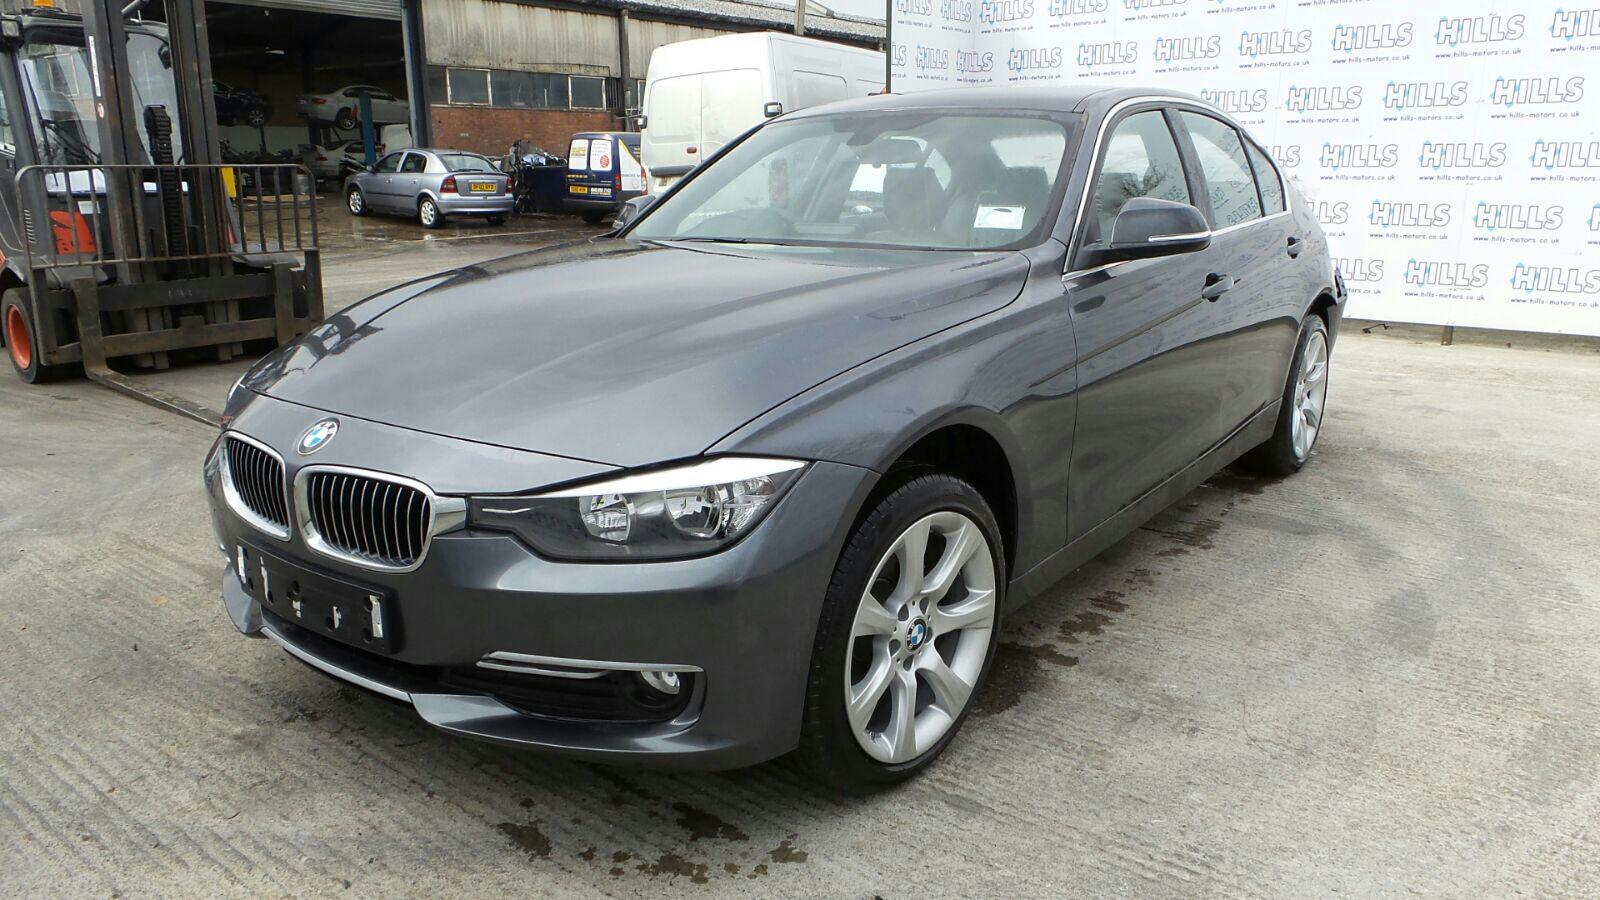 2014 bmw 320d saloon f30 front end assembly bumper bonnet wings headlights rads ebay. Black Bedroom Furniture Sets. Home Design Ideas